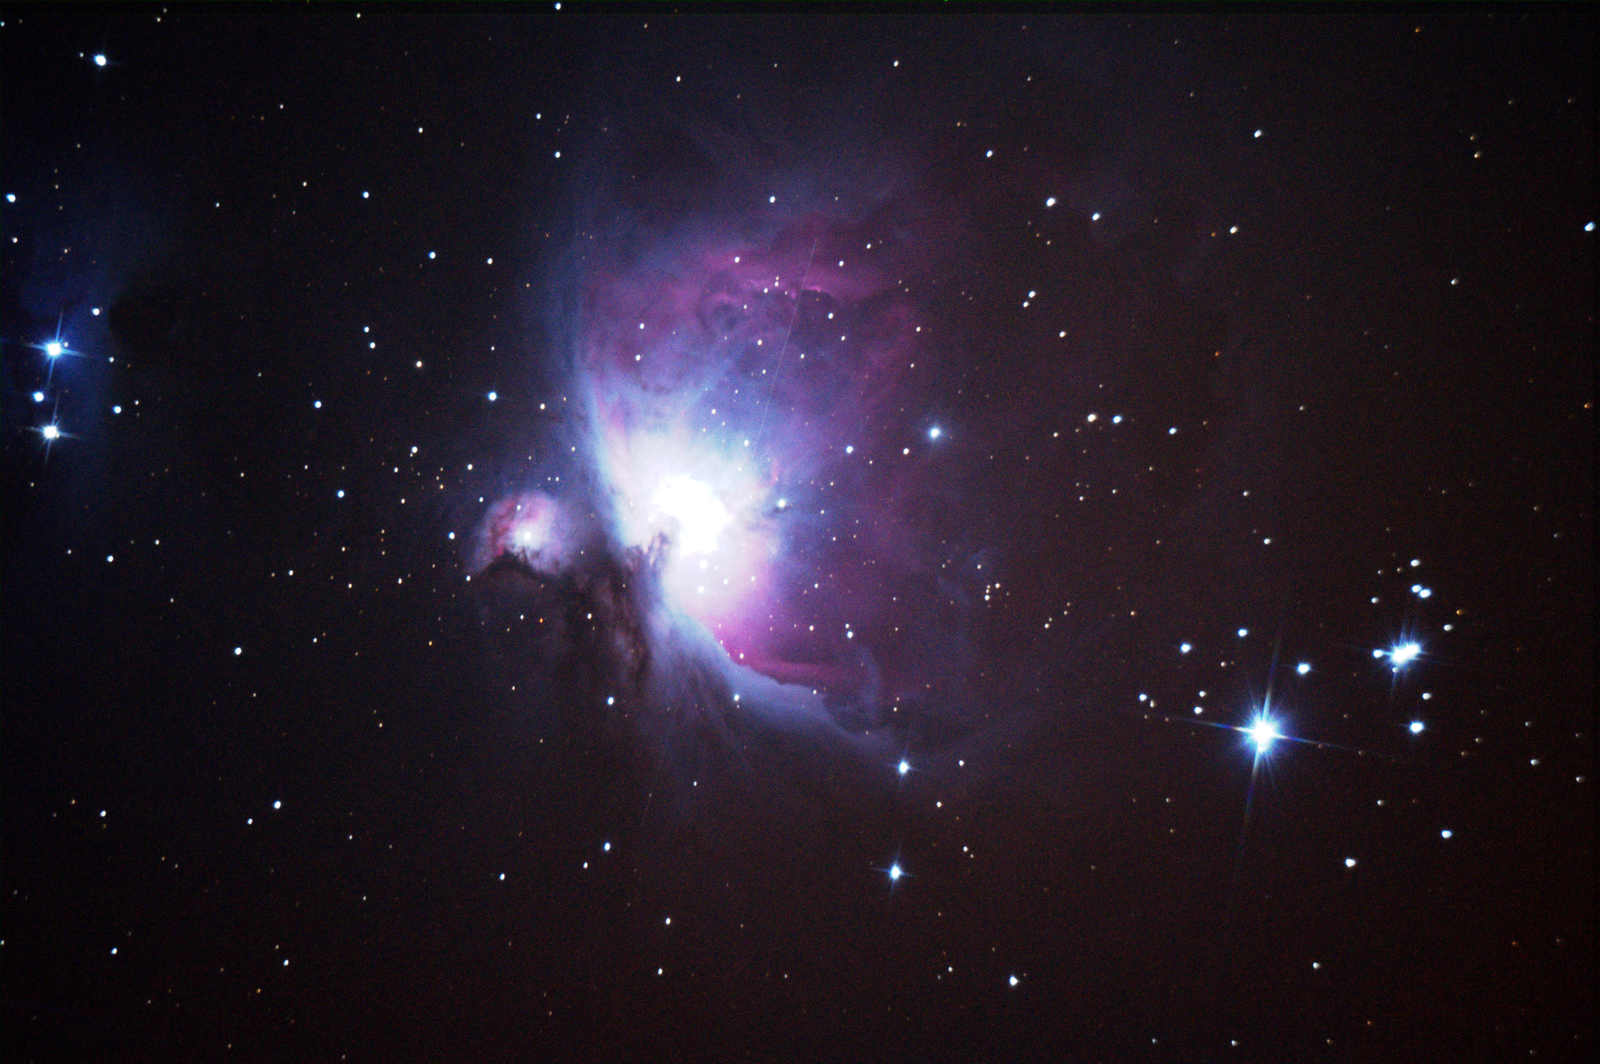 M42/3, cleaned for noise pollution not stacked